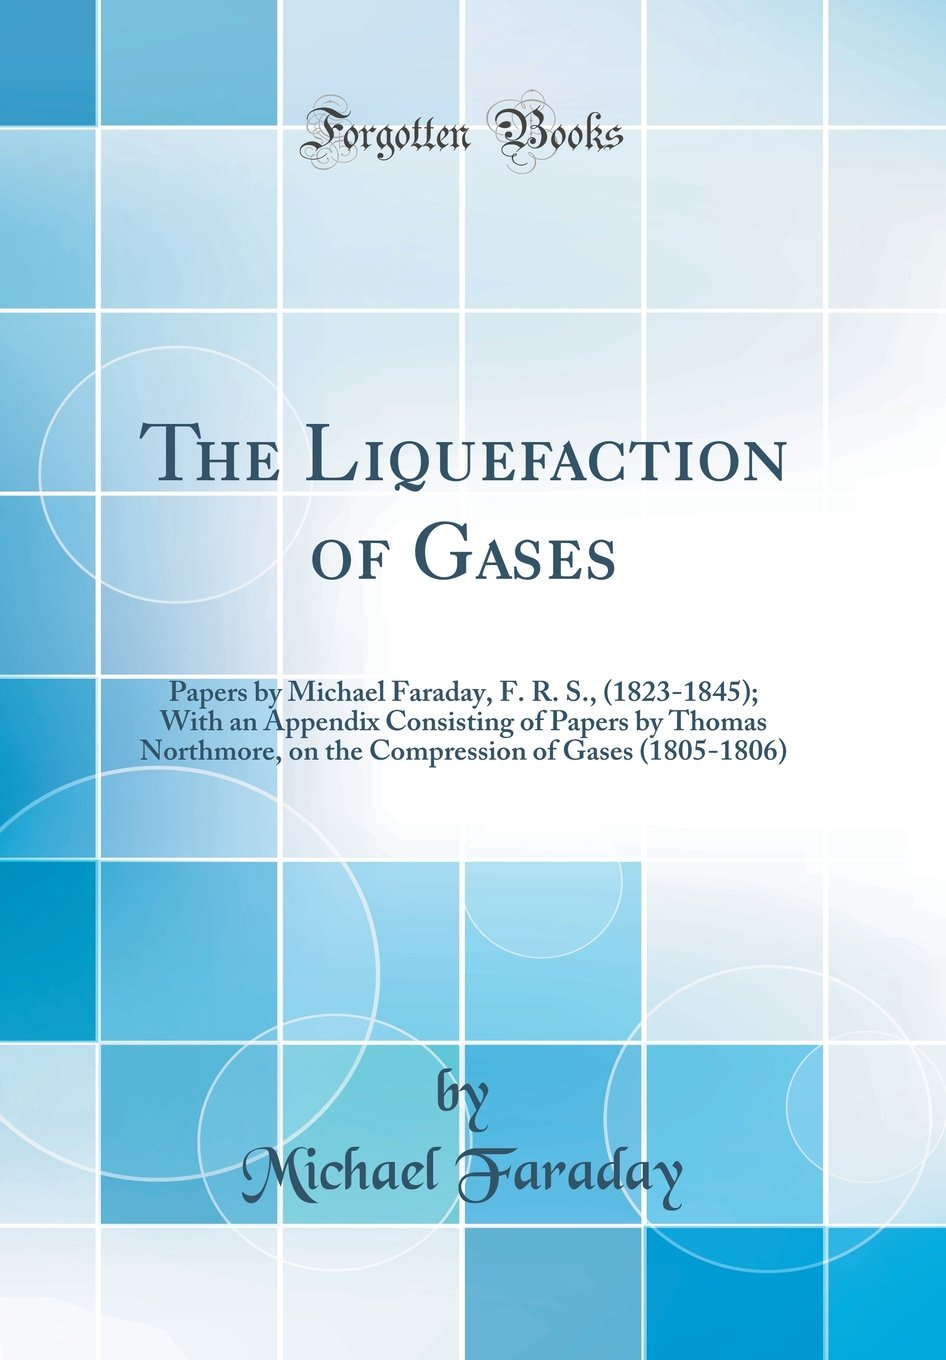 The Liquefaction of Gases: Papers by Michael Faraday, F. R. S., (1823-1845); With an Appendix Consisting of Papers by Thomas Northmore, on the Compression of Gases (1805-1806) (Classic Reprint) pdf